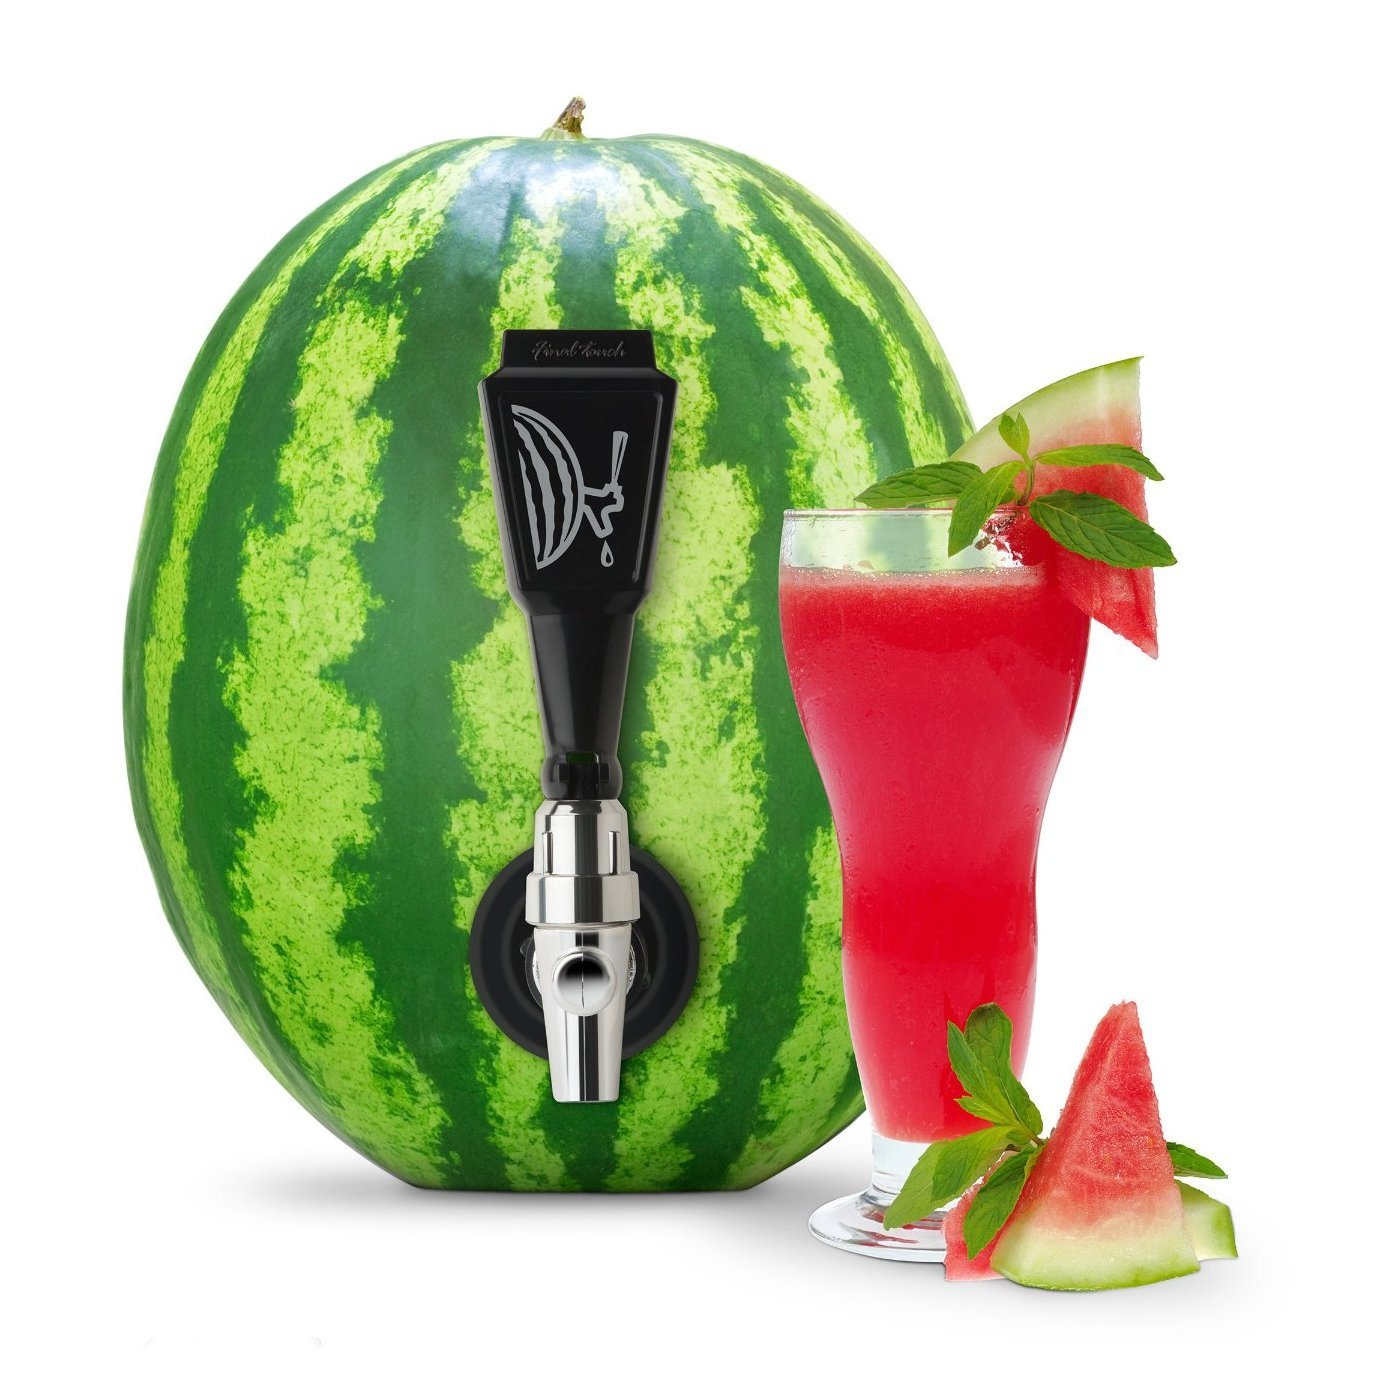 Watermelon Keg Tapping Kit, $19 @amazon.com